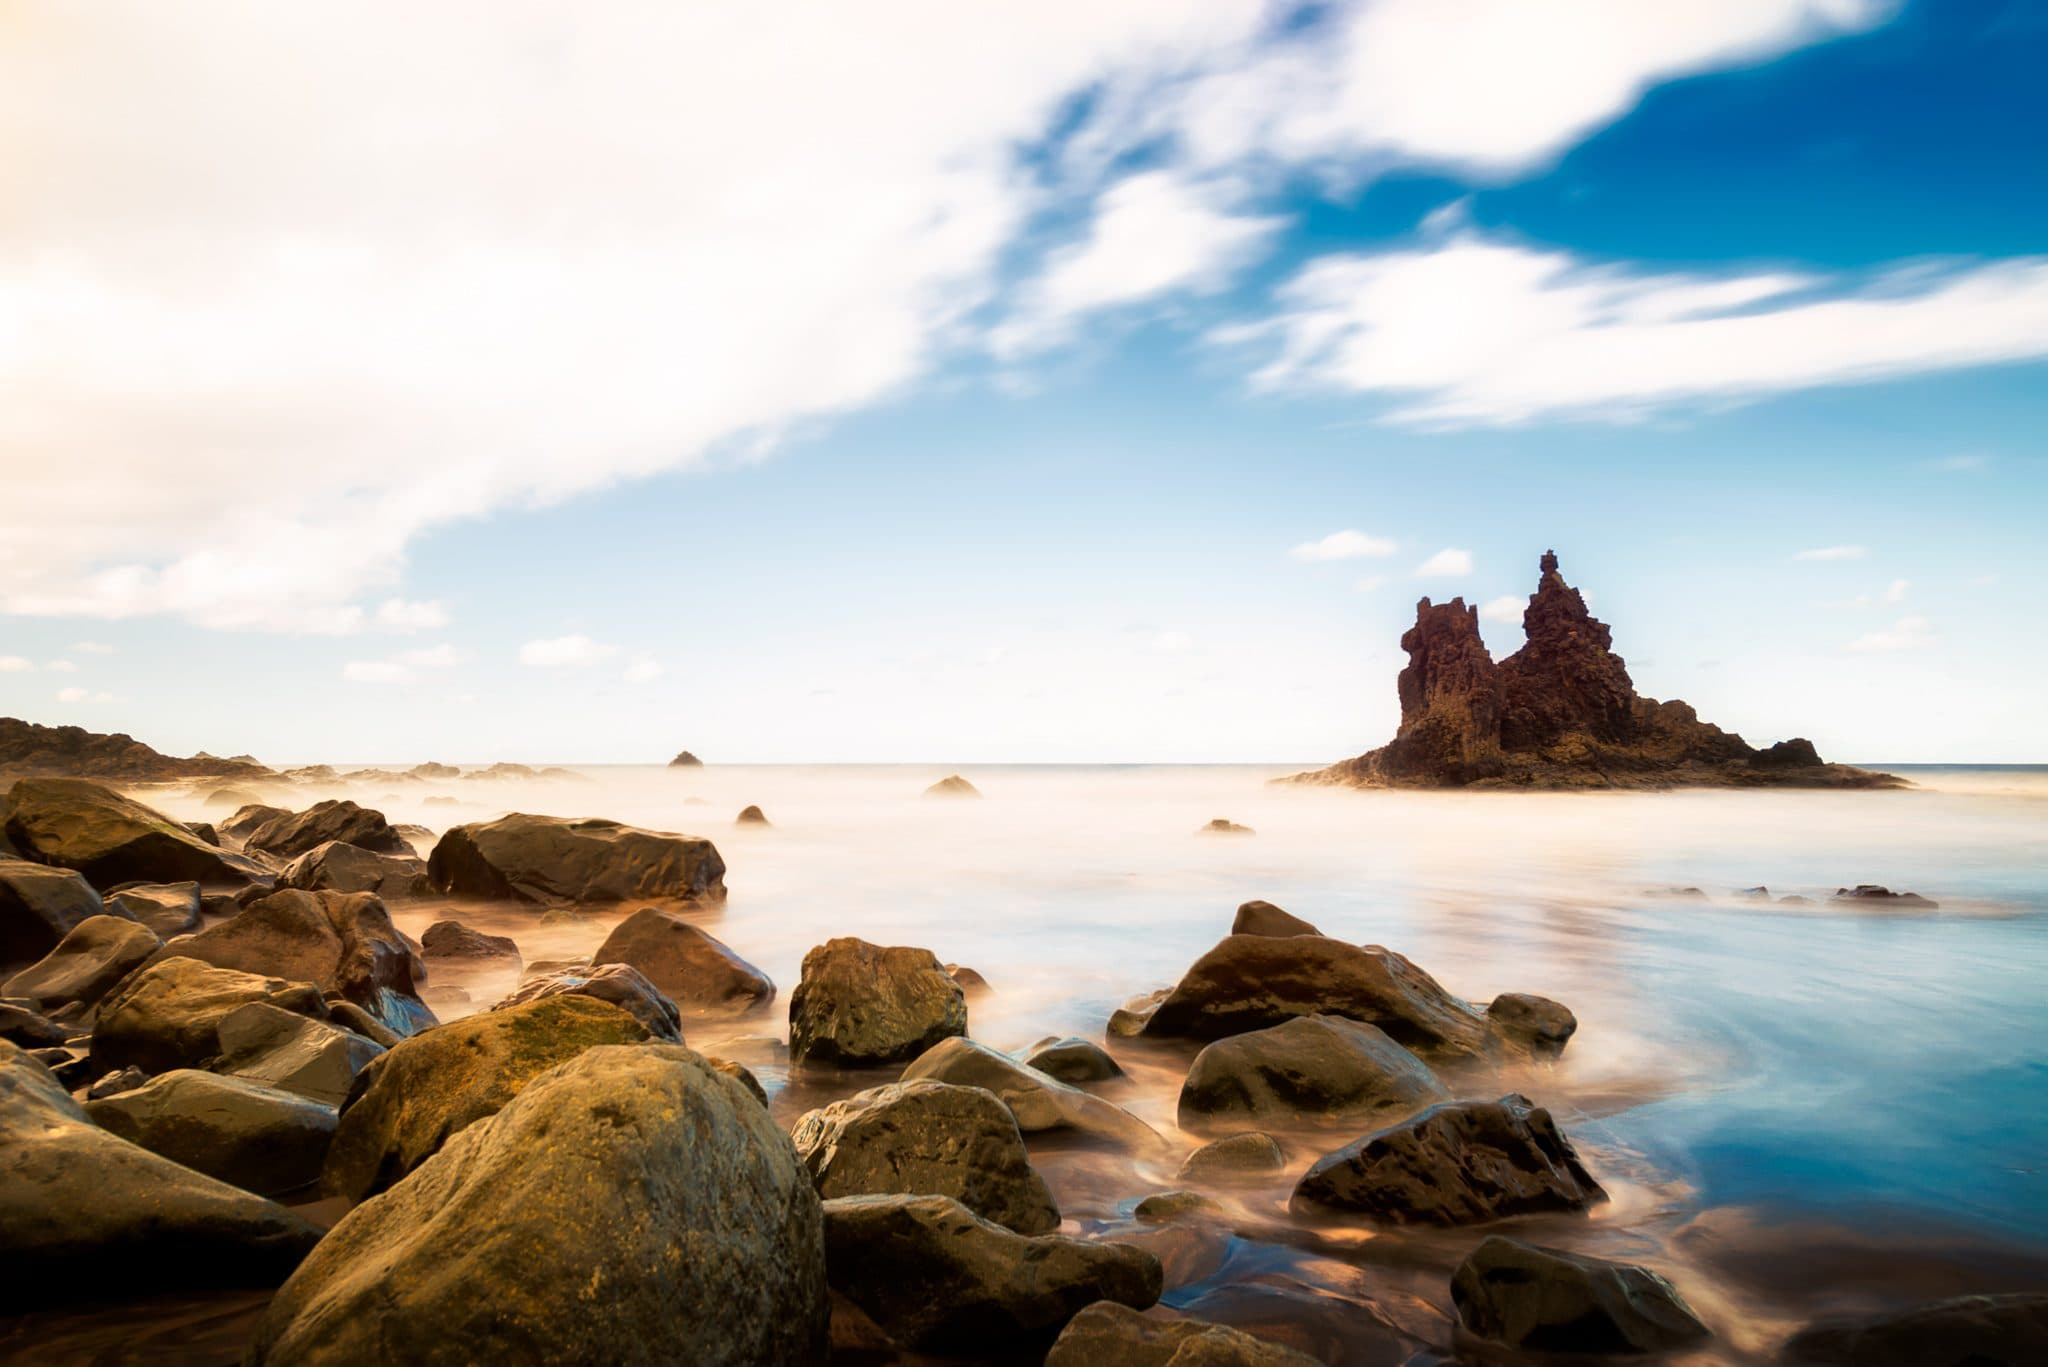 Benijo Beach, Tenerife – day on the black sand while observing ocean's waves.